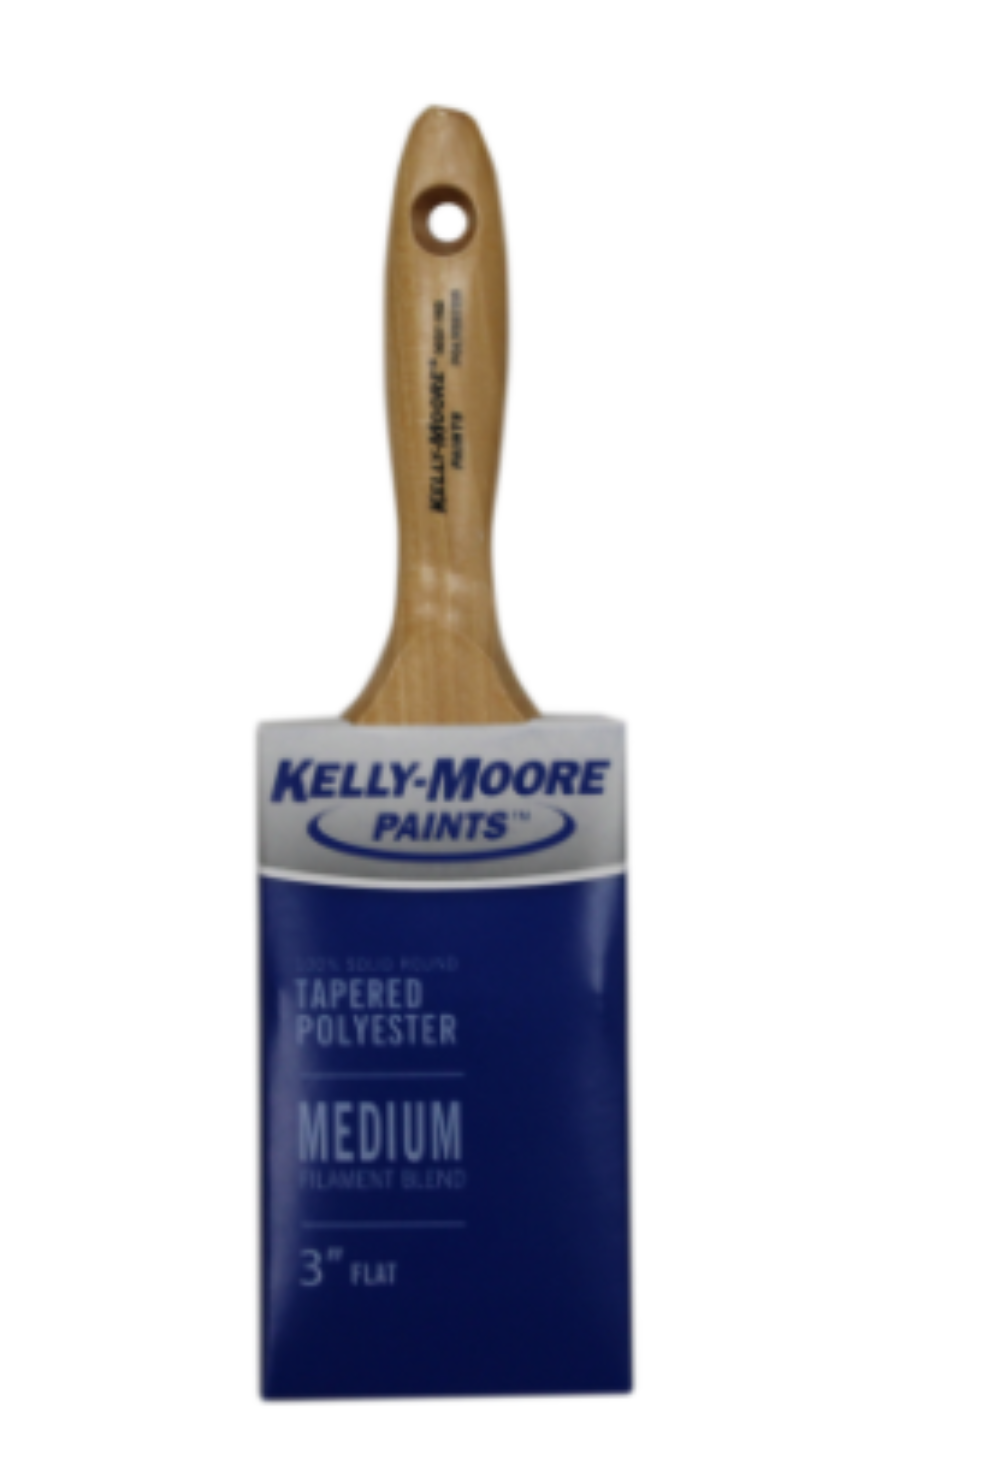 100% Solid Tapered Polyester Varnish, available at Kelly-Moore Paints for Contractors.